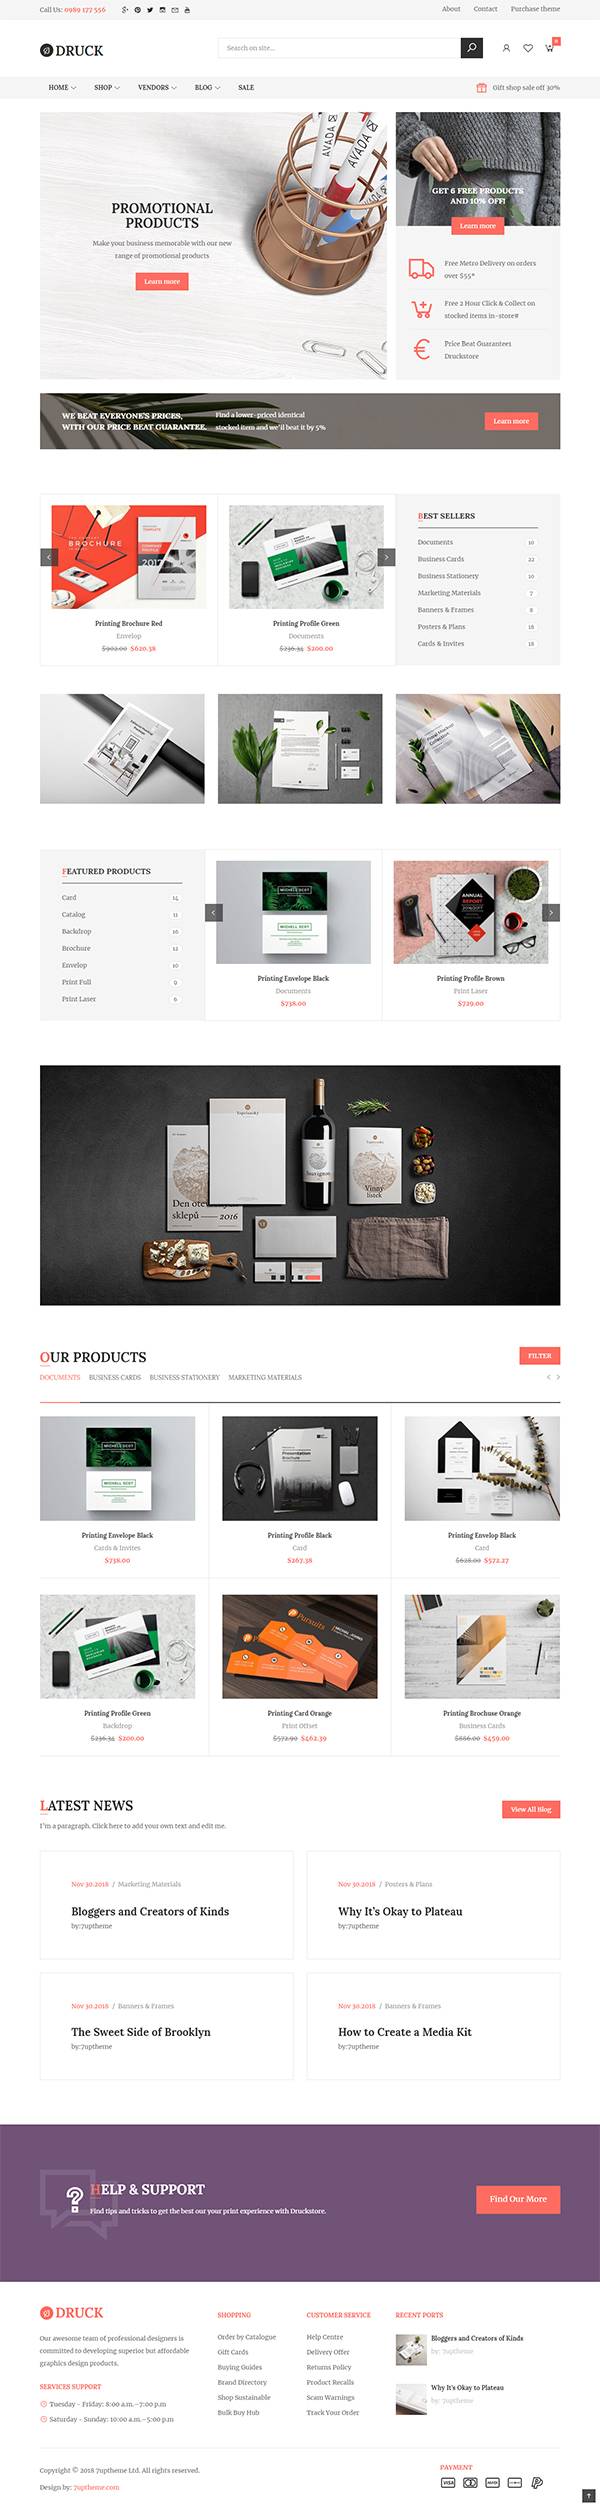 Druck - Print shop WooCommerce WordPress Theme